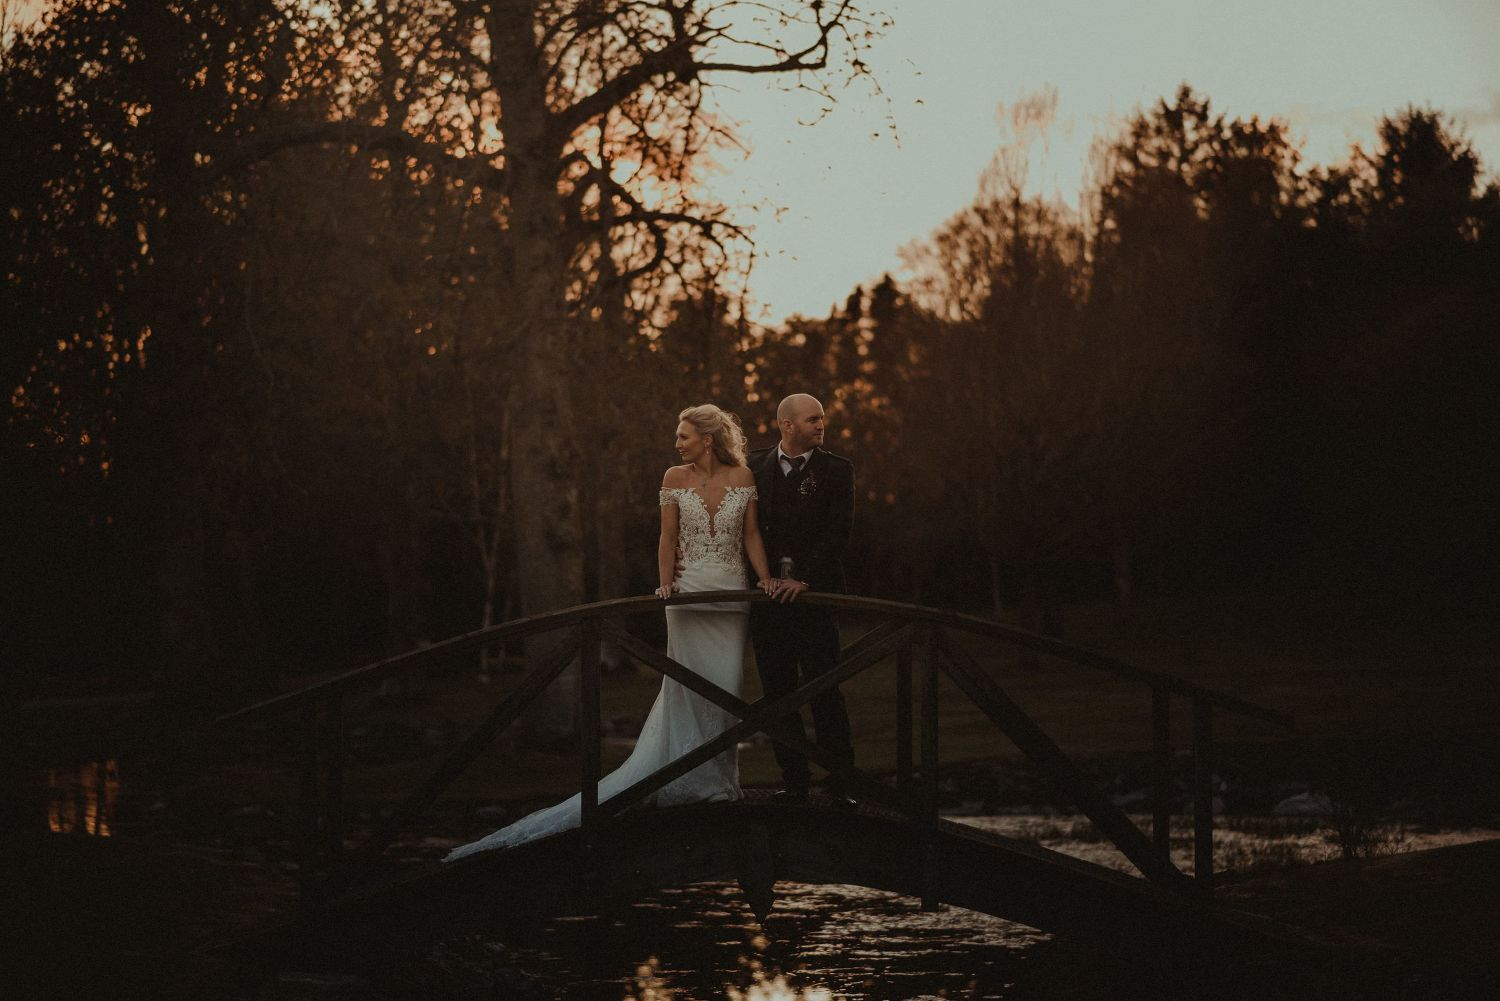 Bride and groom's wedding portrait at Elsick House grounds